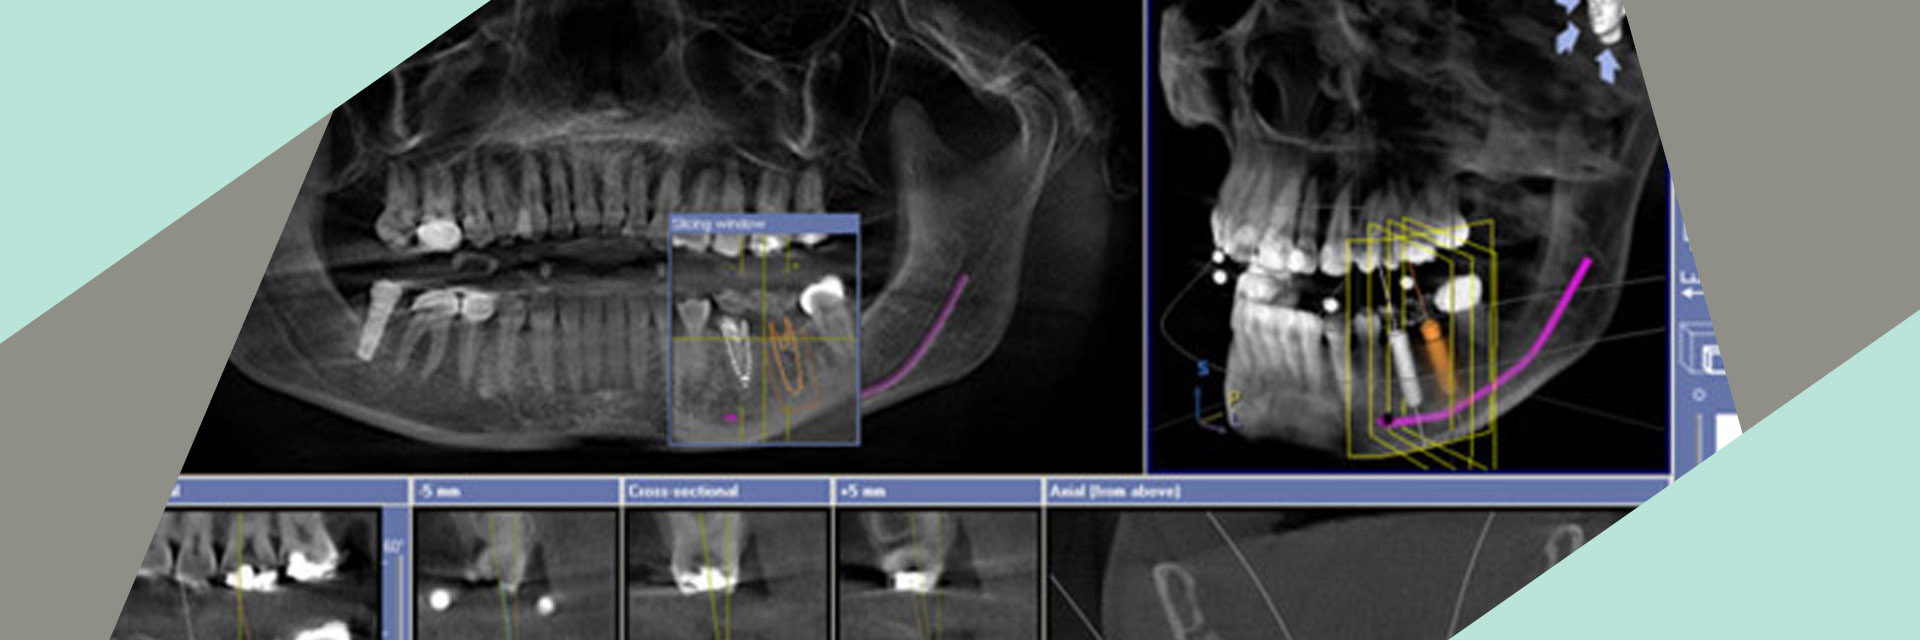 queensboro-dental-implants-flushing-ny-3d-imaging-for-implant-placement-slider-03_03